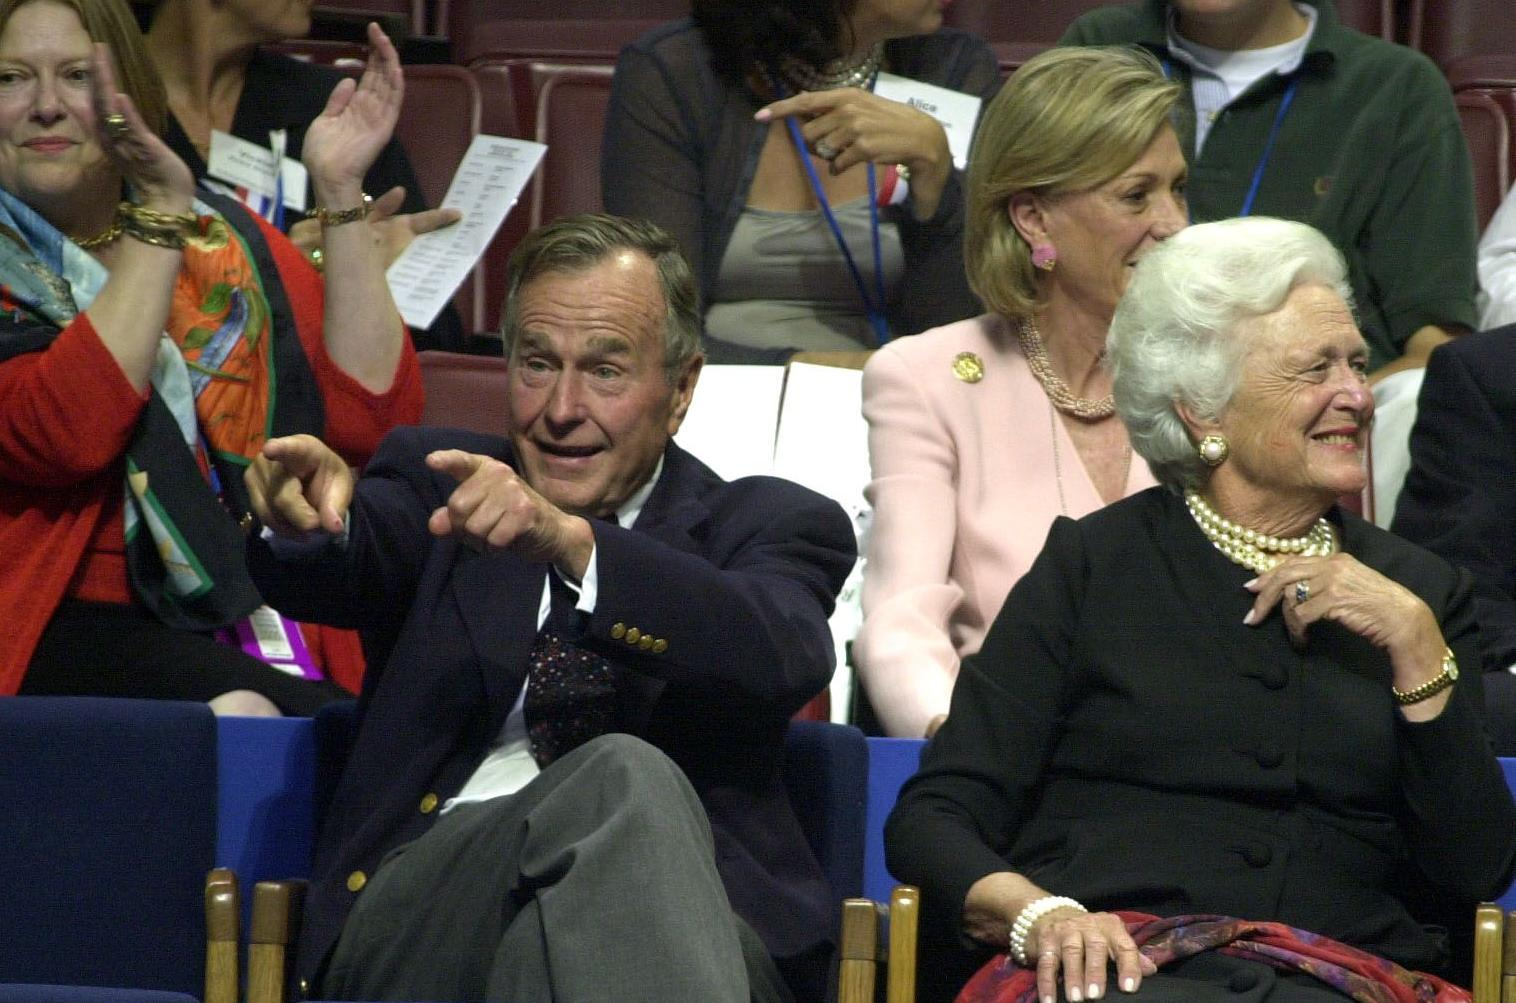 PHILADELPHIA, PA - JULY 31: Former US President George Bush (L) and his wife Barbara (R) enjoy the evening session of the 2000 Republican National Convention at the First Union Center, Philadelphia,PA, 31 July,2000. The Bush family is on hand this week to see their son, George W. Bush, receive the nomination of the Republican Party for the 2000 presidential election. (ELECTRONIC IMAGE) (Photo credit should read ROBERTO SCHMIDT/AFP/Getty Images)